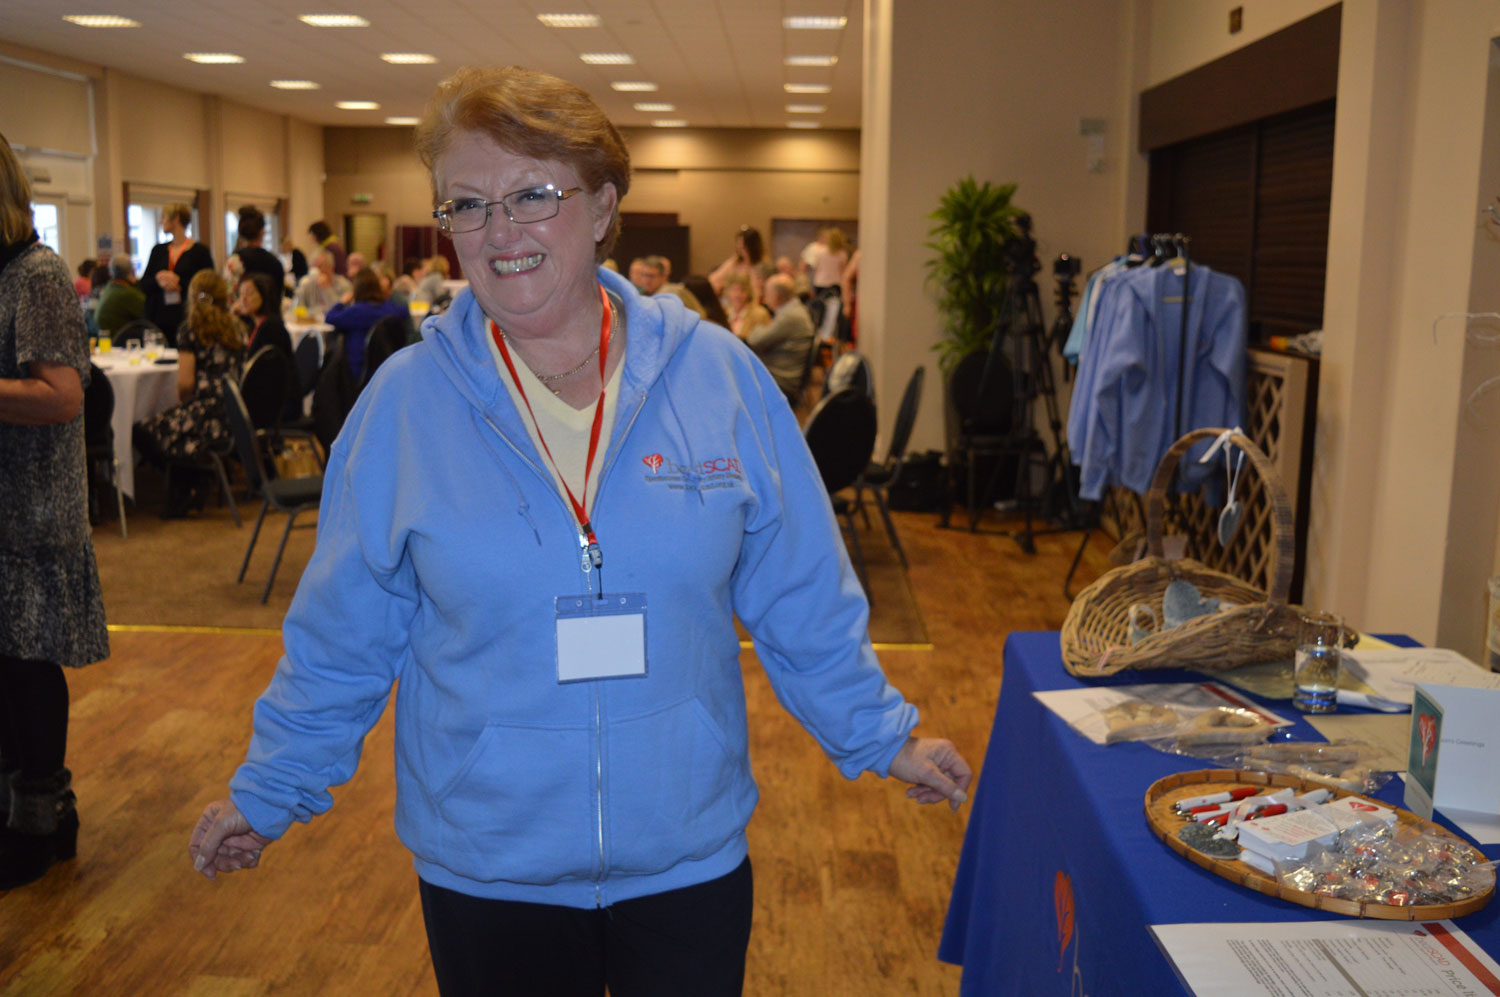 Delegates purchased Beat SCAD-branded merchandise, including hoodies